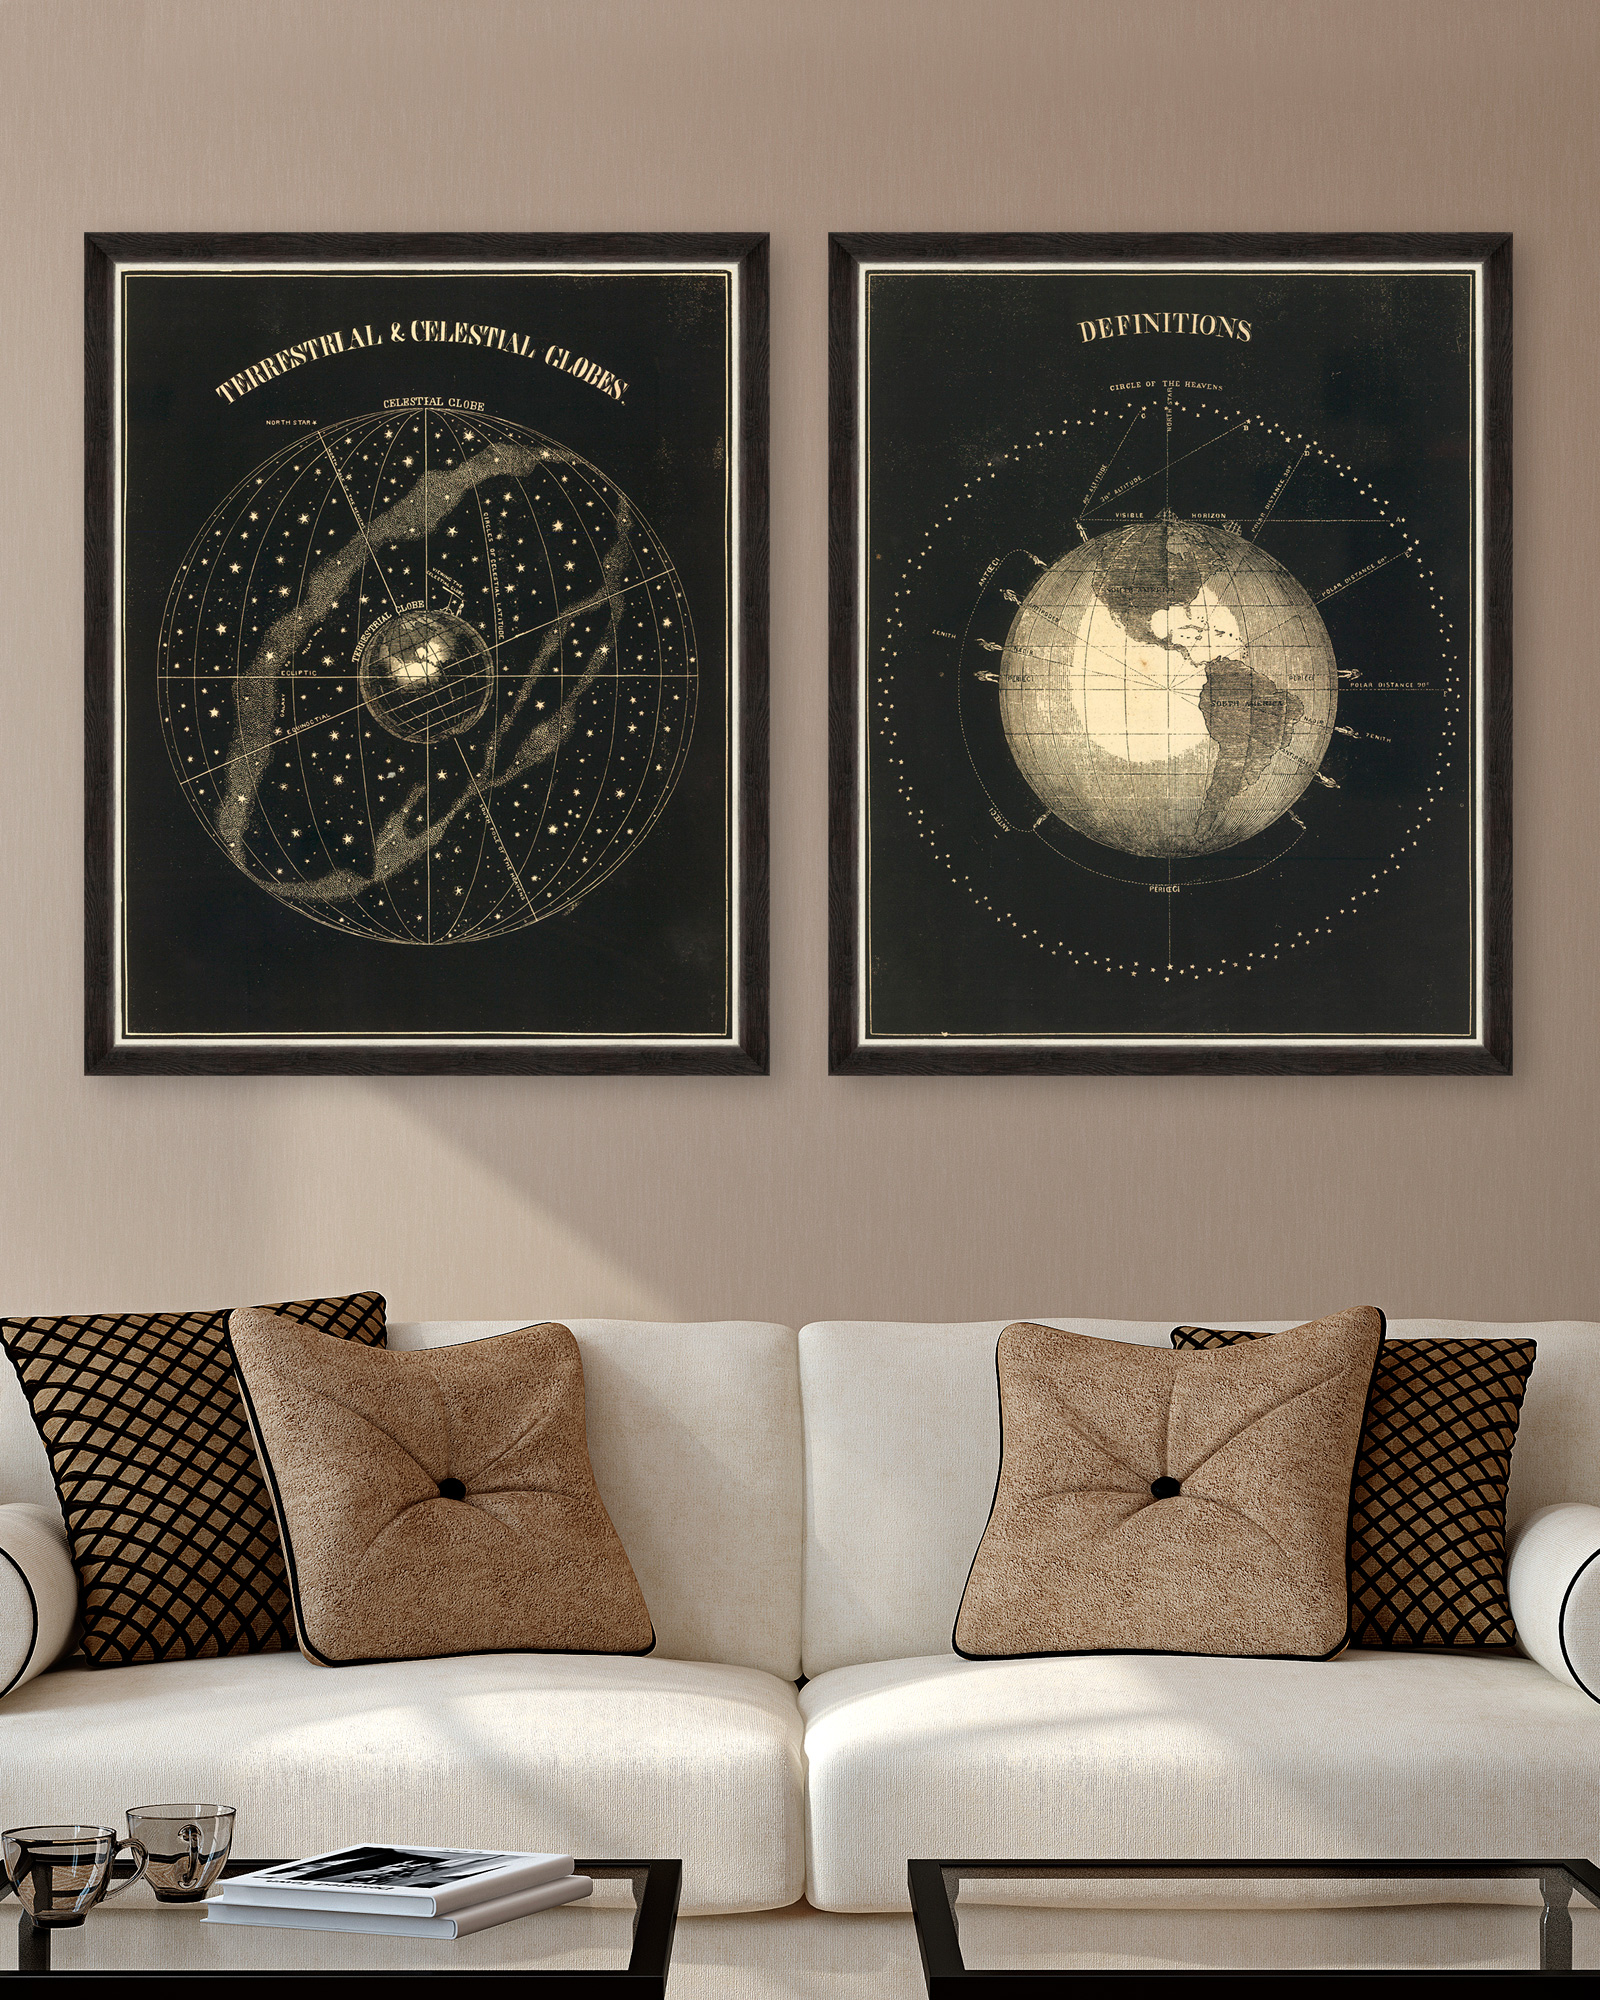 Tablou 2 piese Framed Art Terrestrial and Celestial Globes